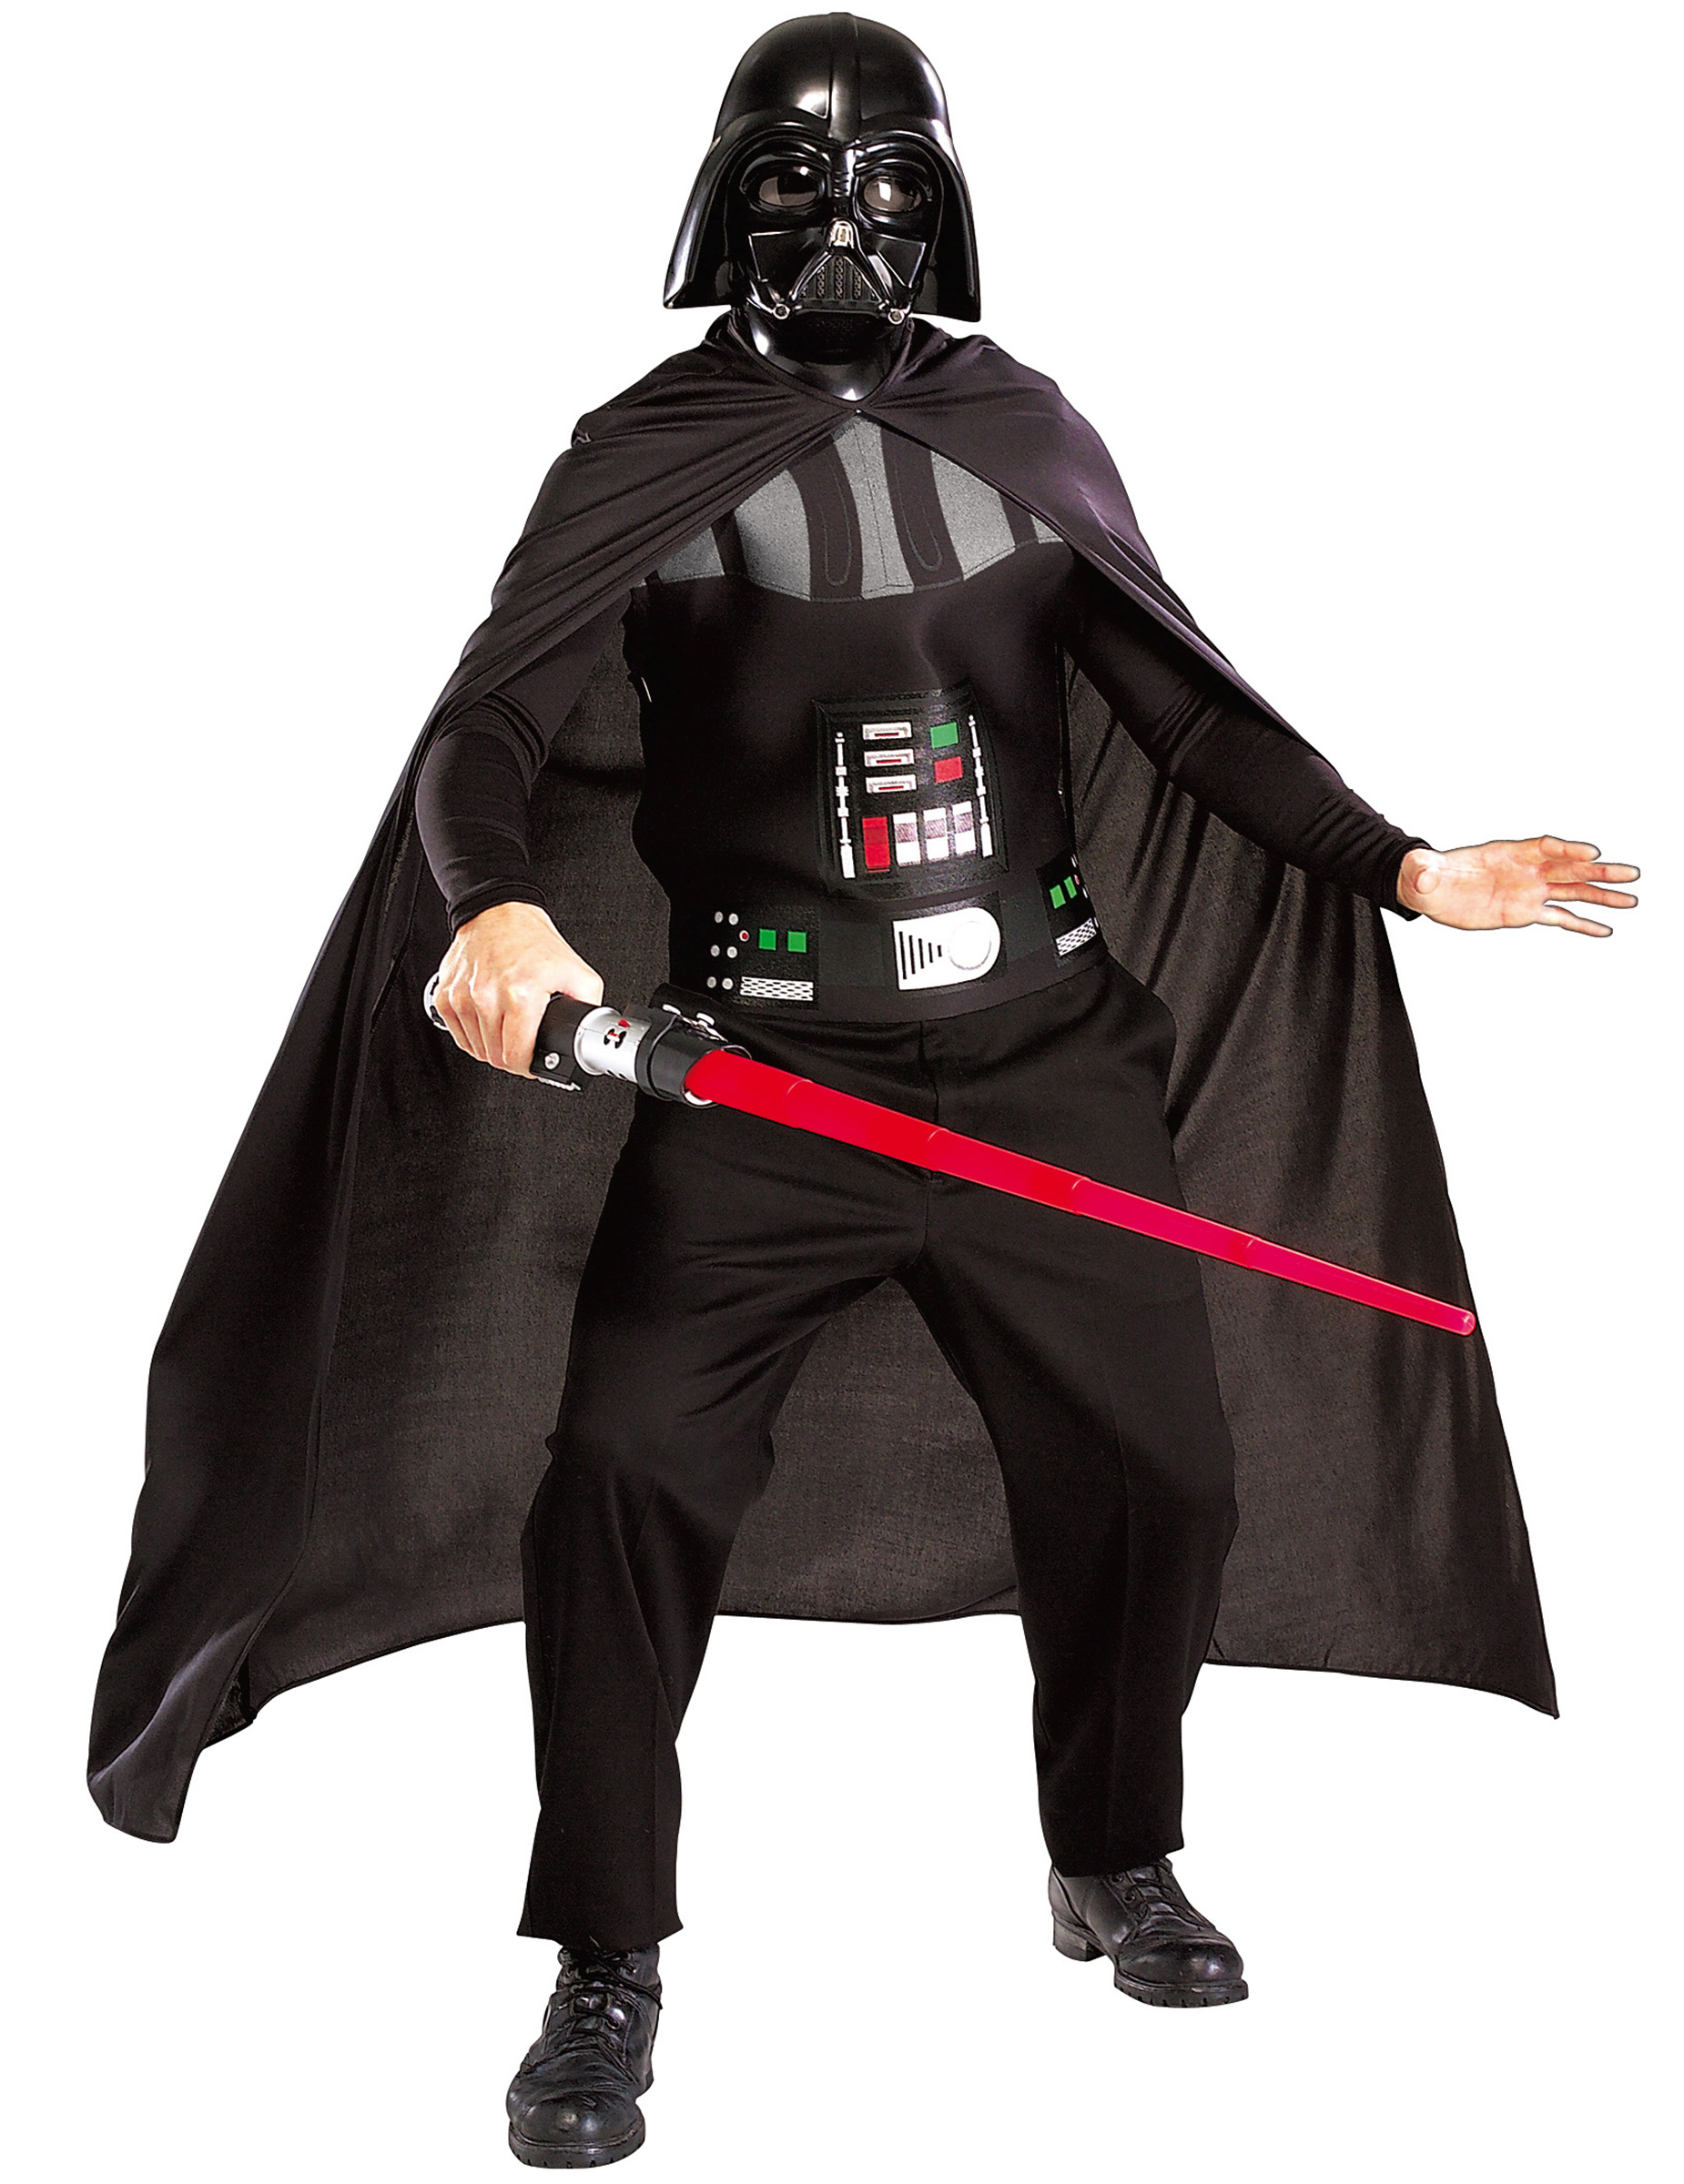 D guisement dark vador star wars adulte deguise toi - Photo dark vador ...